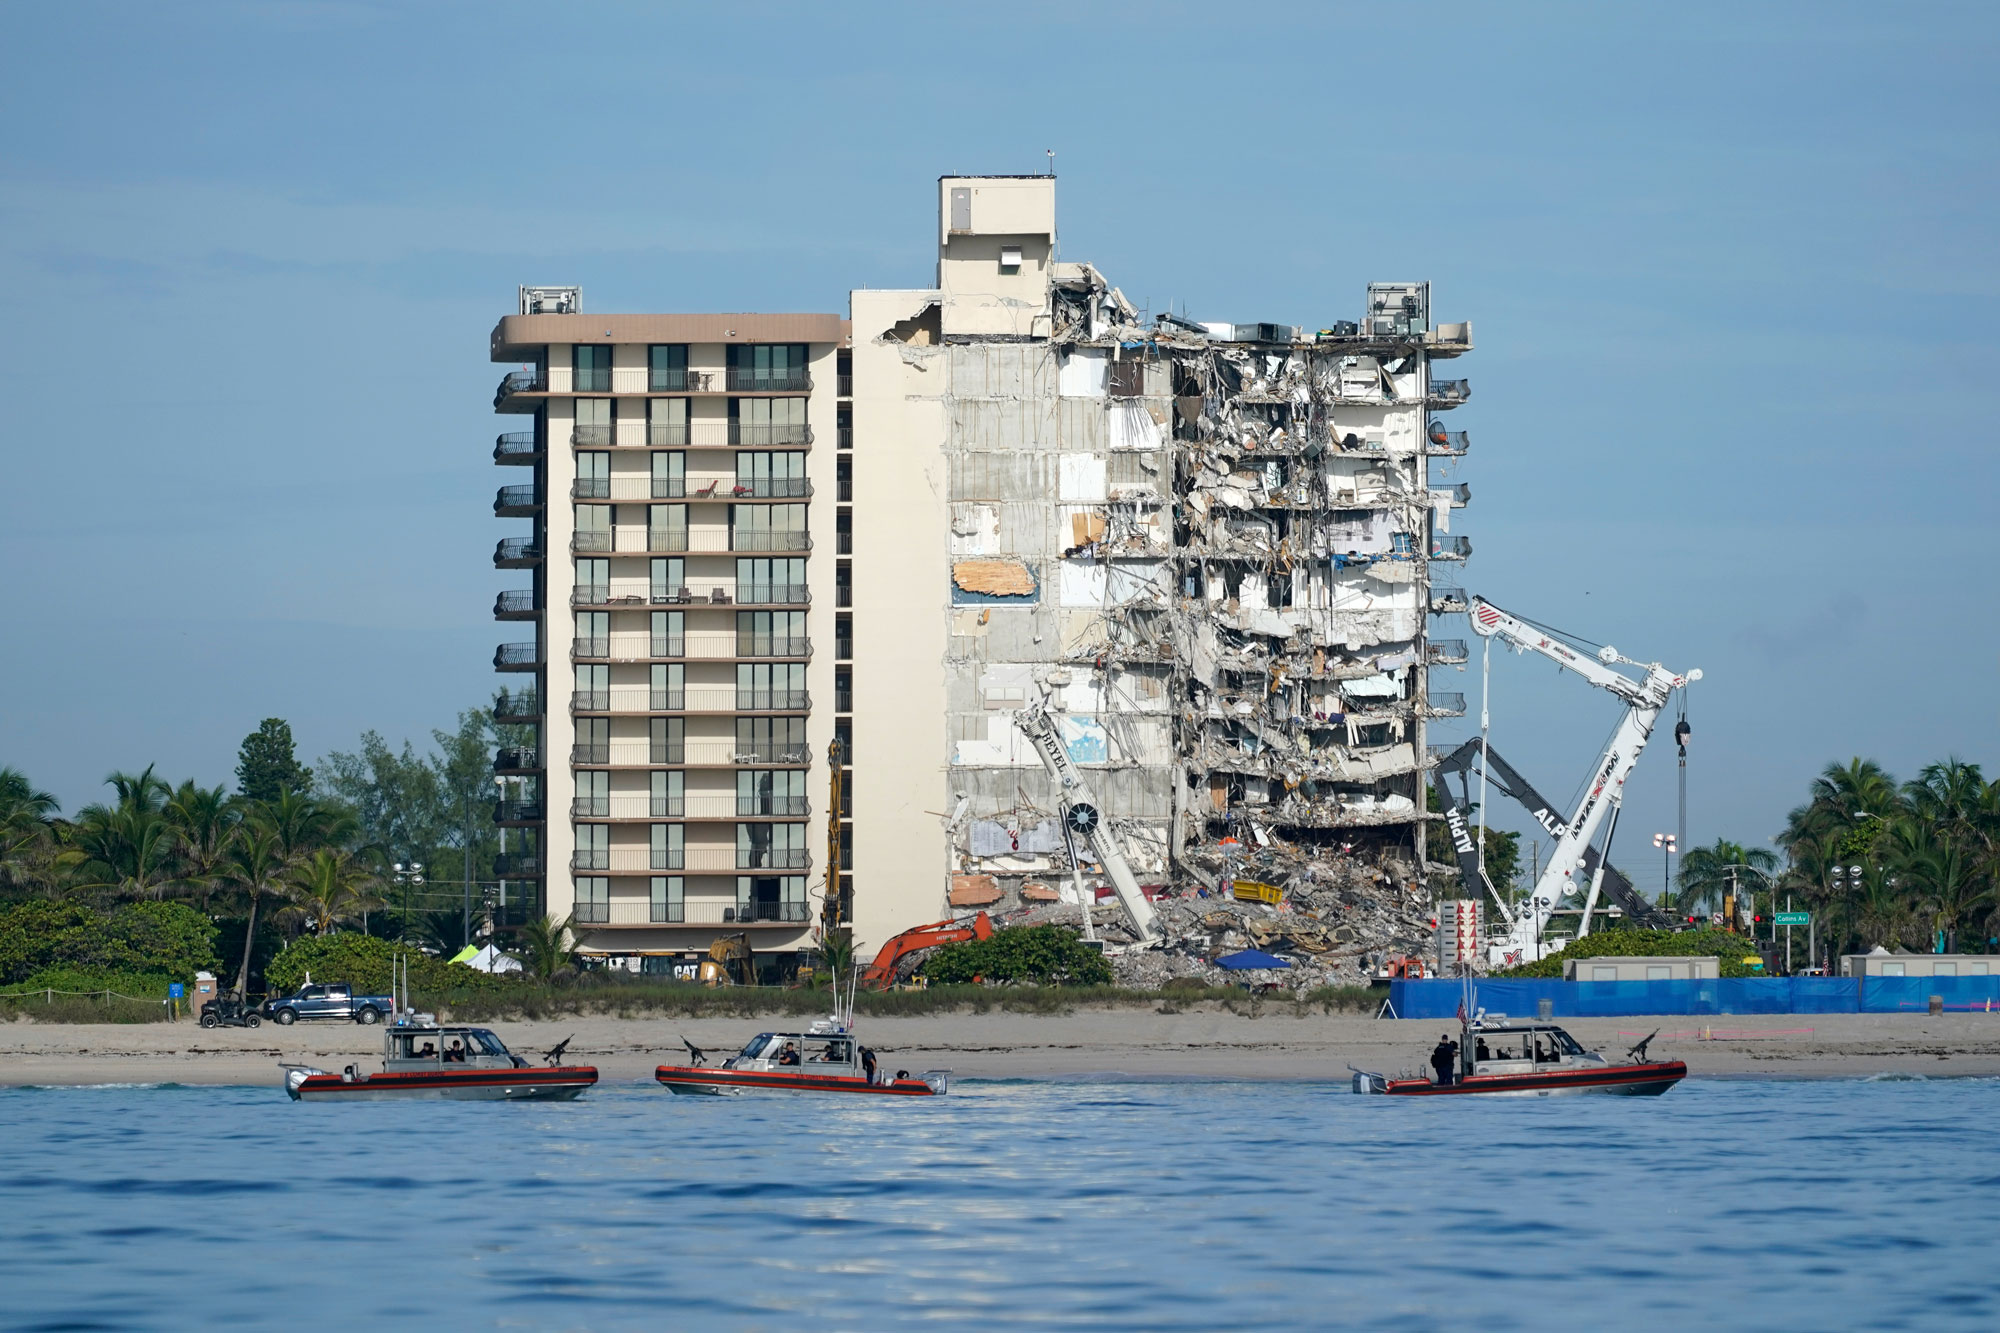 Search and rescue efforts at collapsed Surfside condo paused for demolition preparation